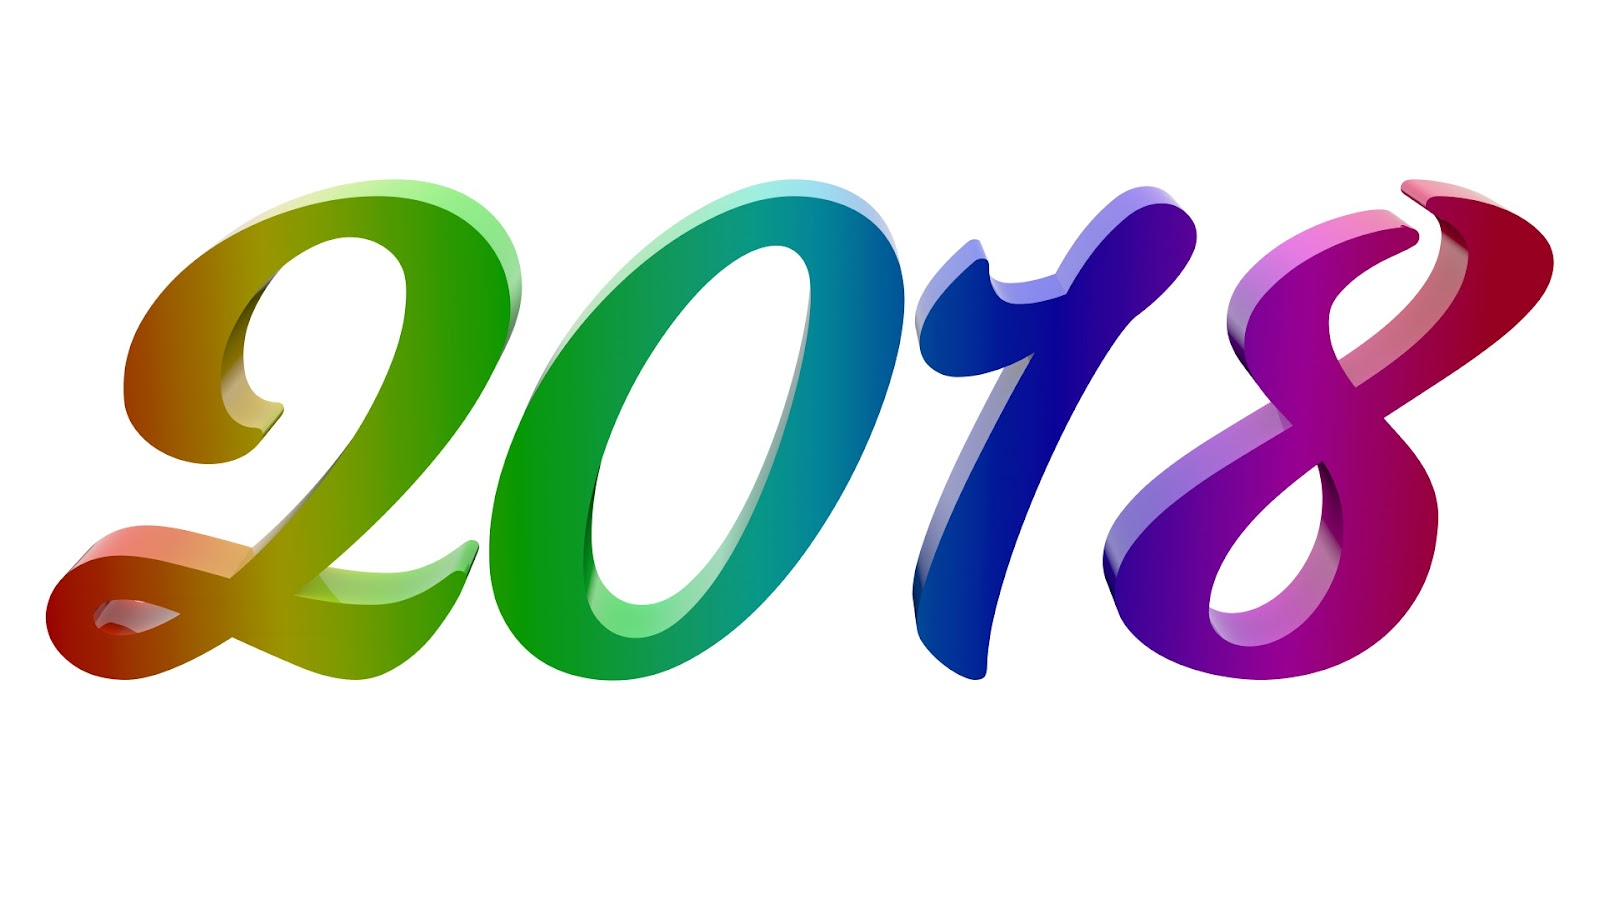 2018 New Year Number Illustration Free Stock Photo - Public Domain ...